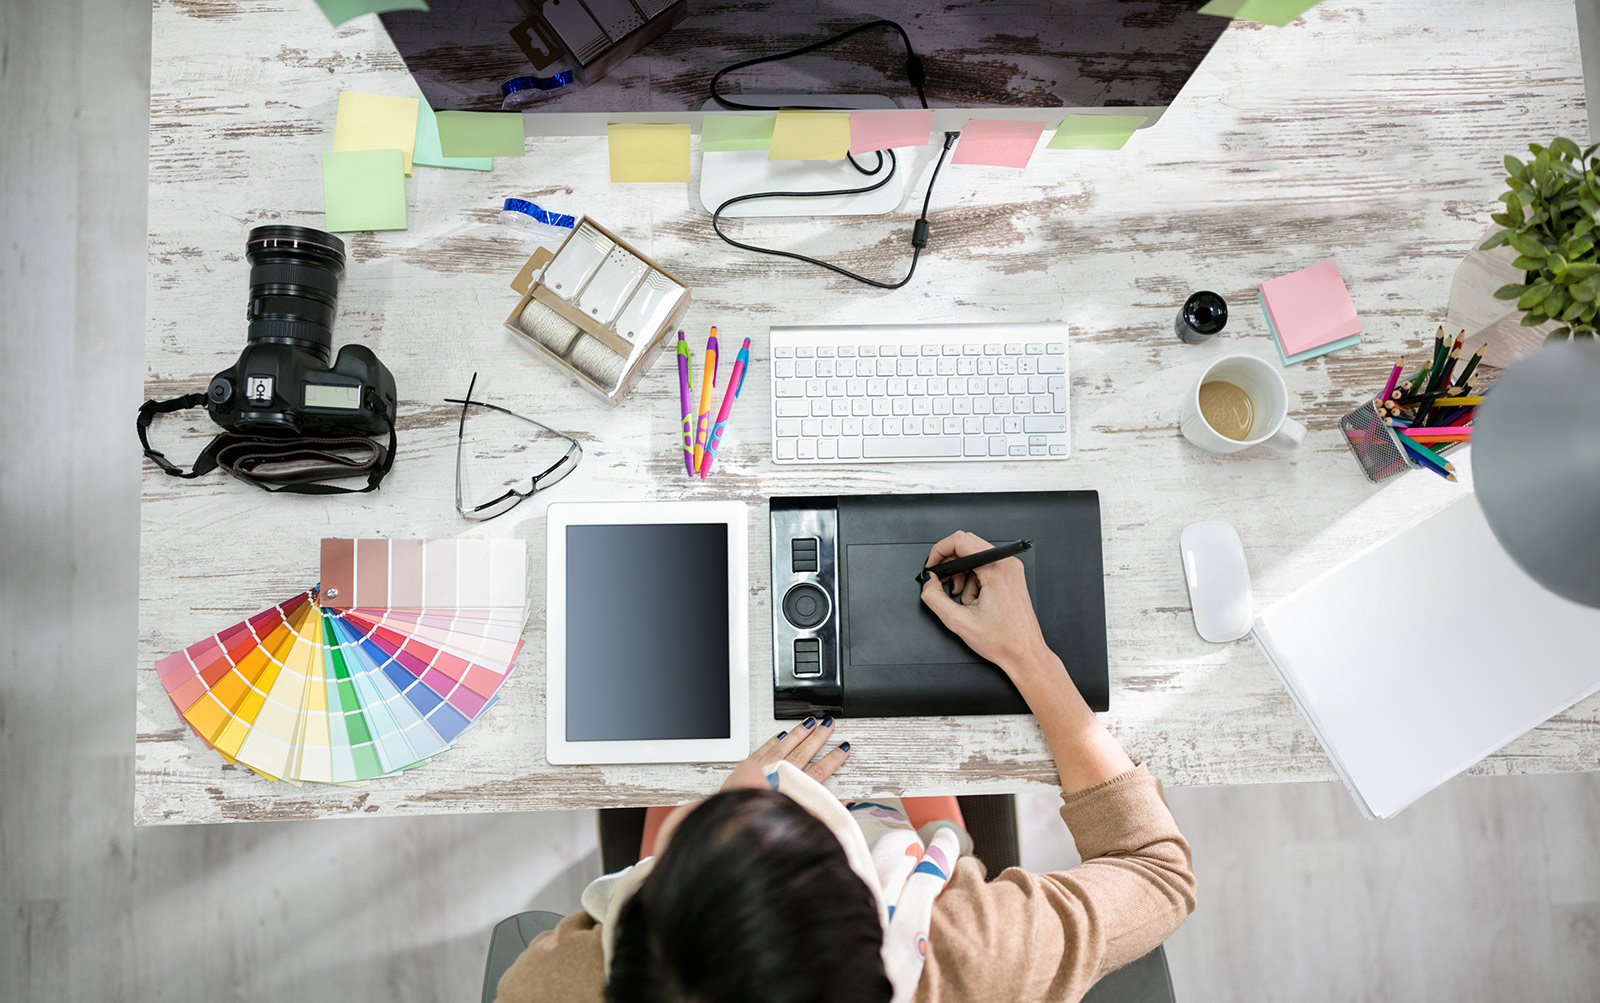 Top-down view of a woman sitting at a desk, writing on a digital drawing pad; the desk is covered in various office supplies (camera, paint swatches, mouse/keyboard, digital drawing pad)